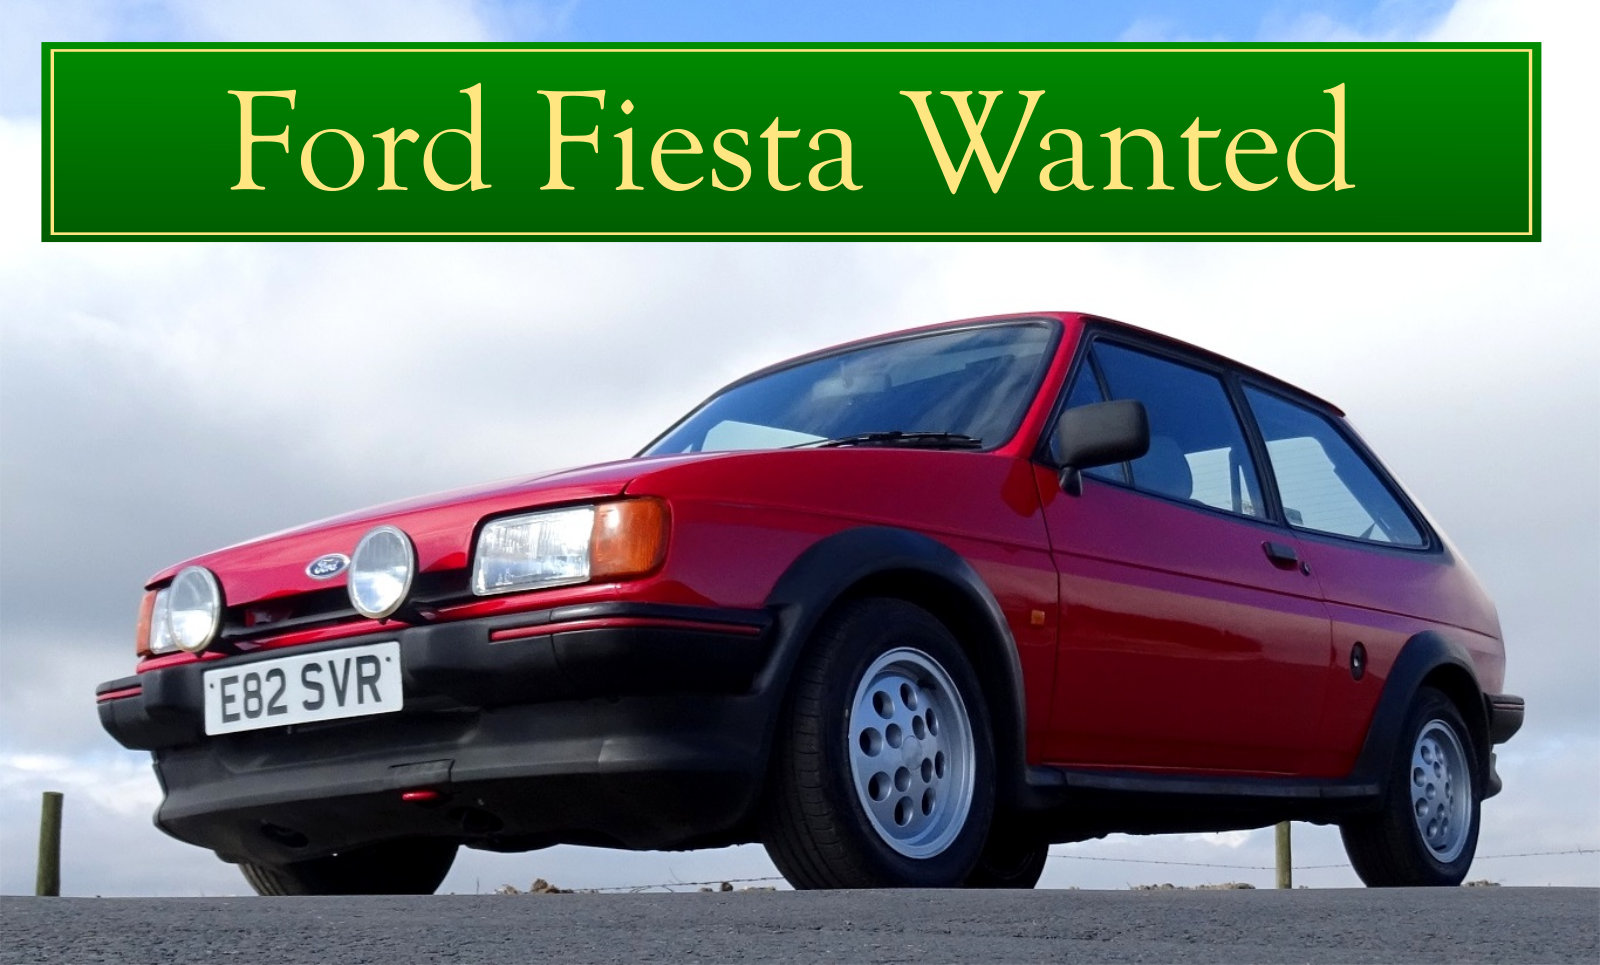 FORD COSWORTH WANTED, CLASSIC CARS WANTED, IMMEDIATE PAYMENT Wanted (picture 3 of 6)